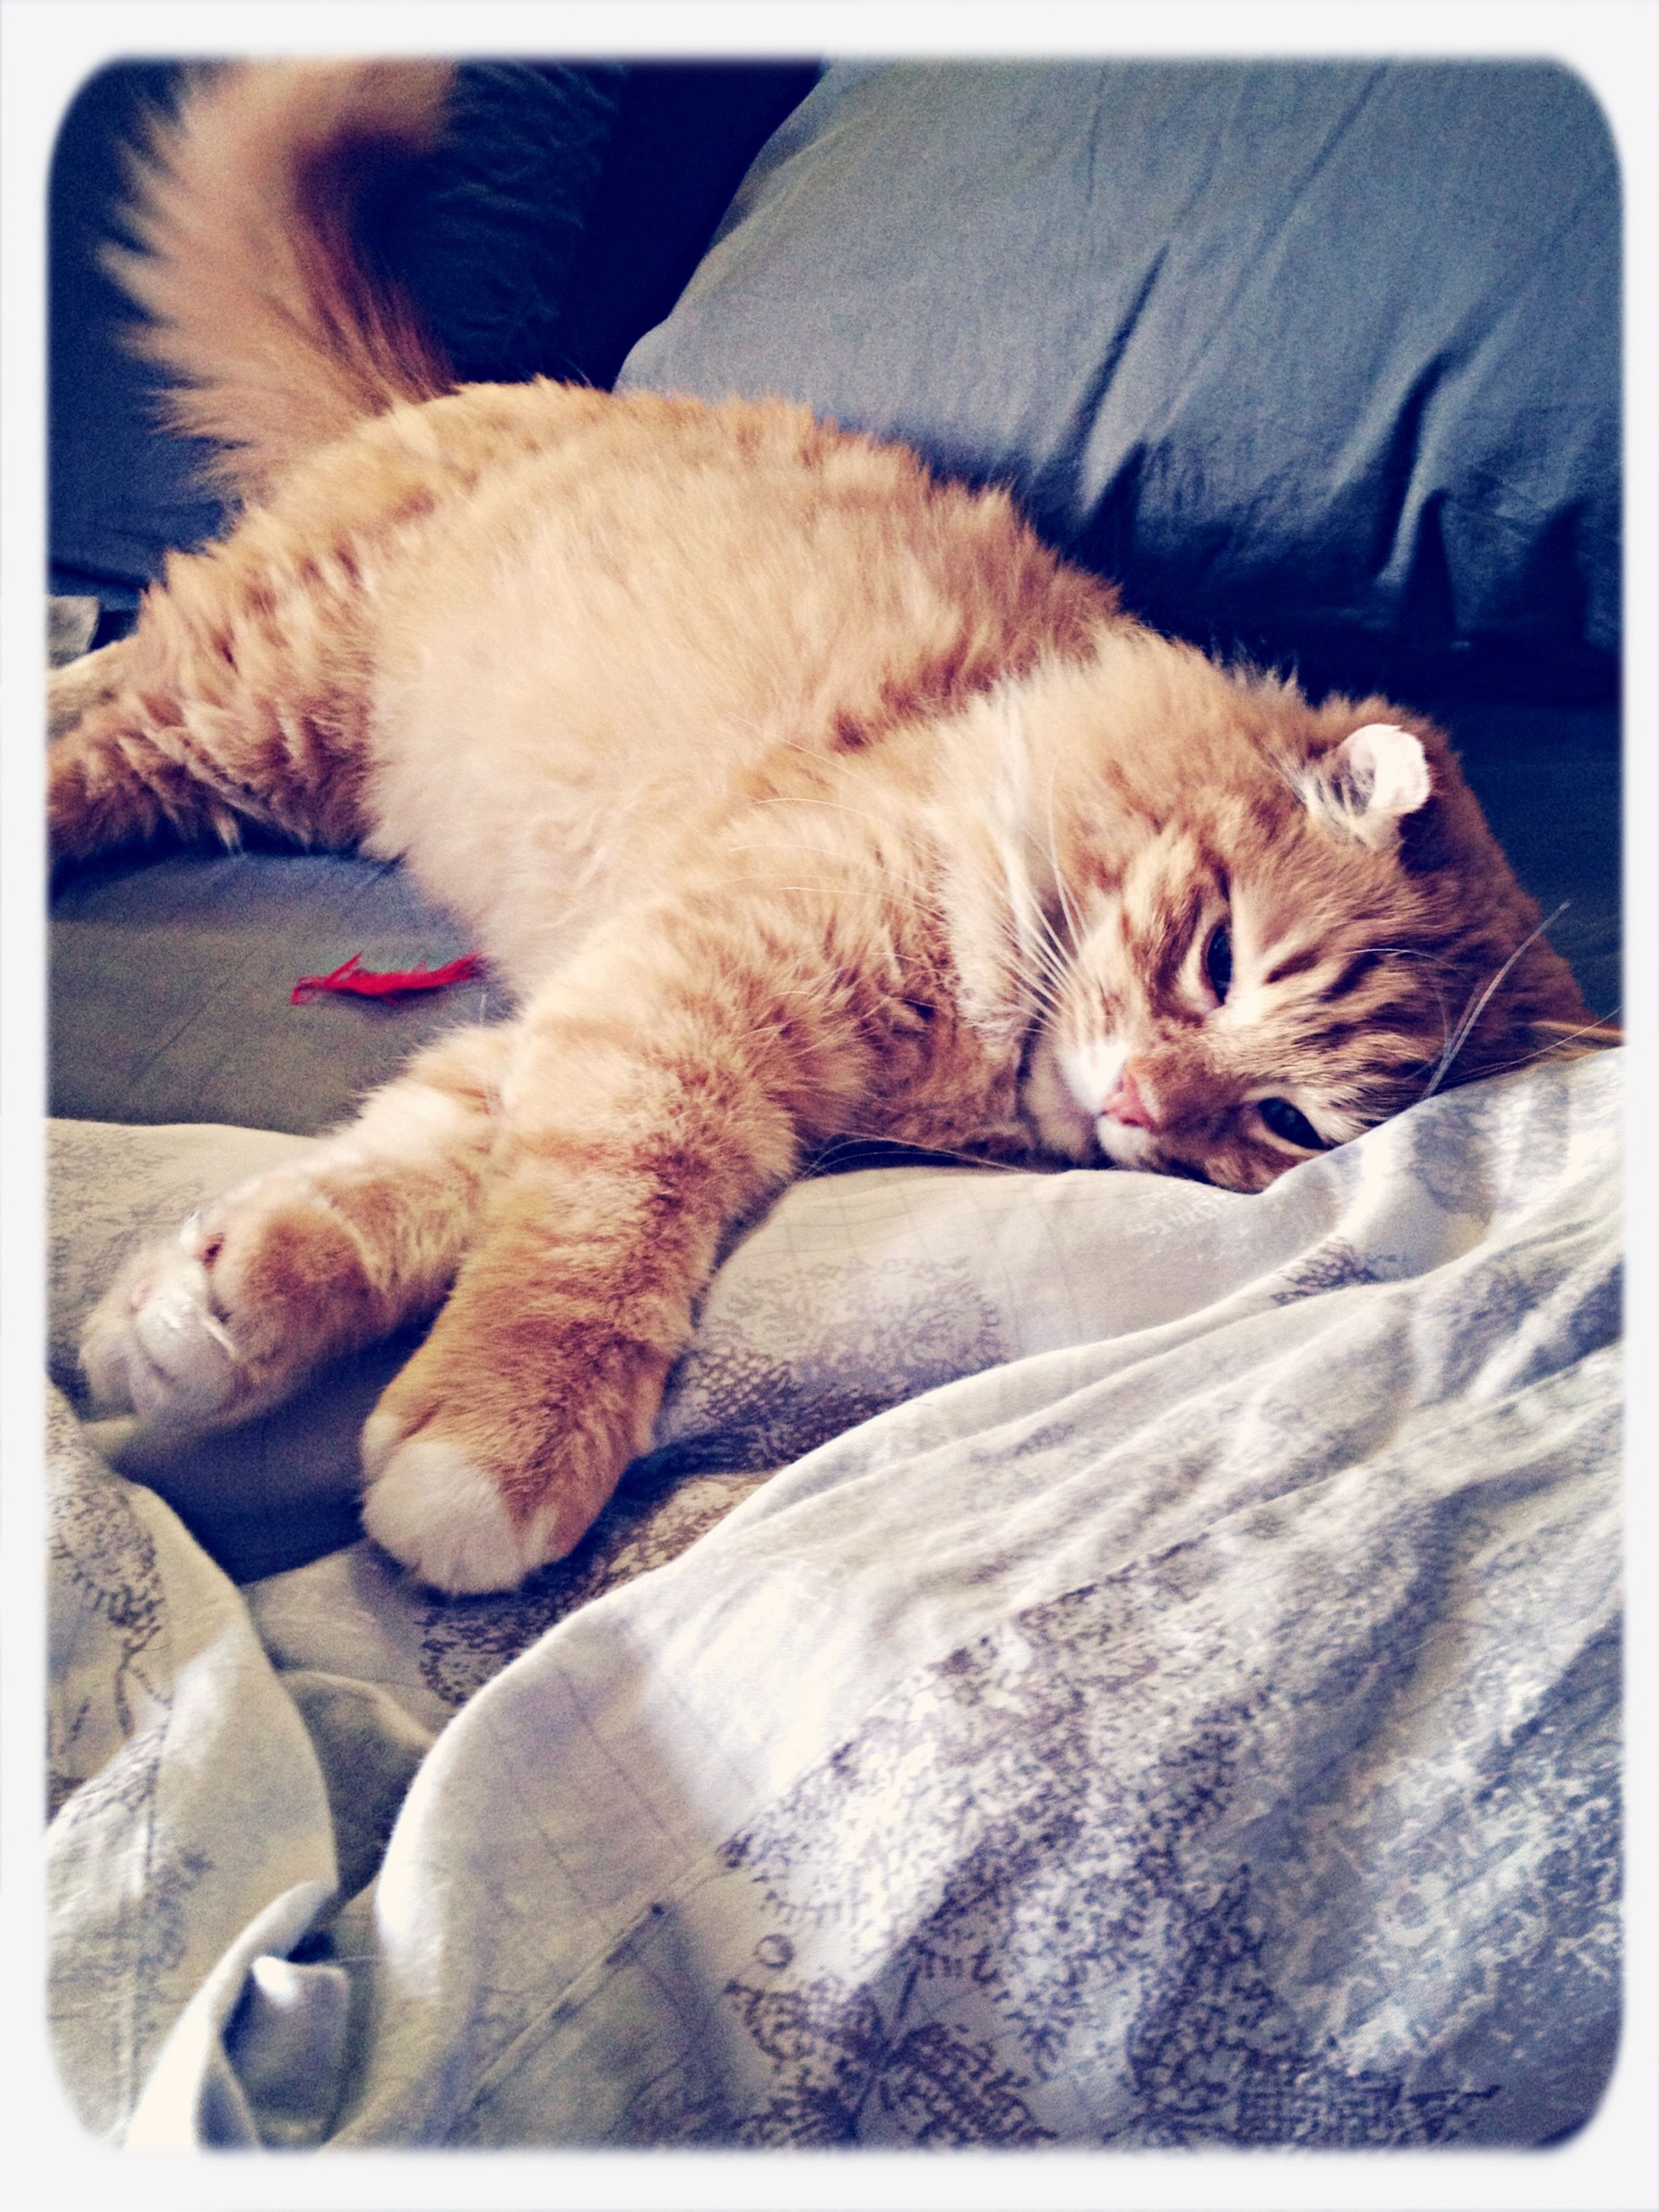 animal themes, transfer print, domestic animals, pets, one animal, mammal, domestic cat, auto post production filter, indoors, sleeping, cat, relaxation, feline, resting, close-up, person, togetherness, part of